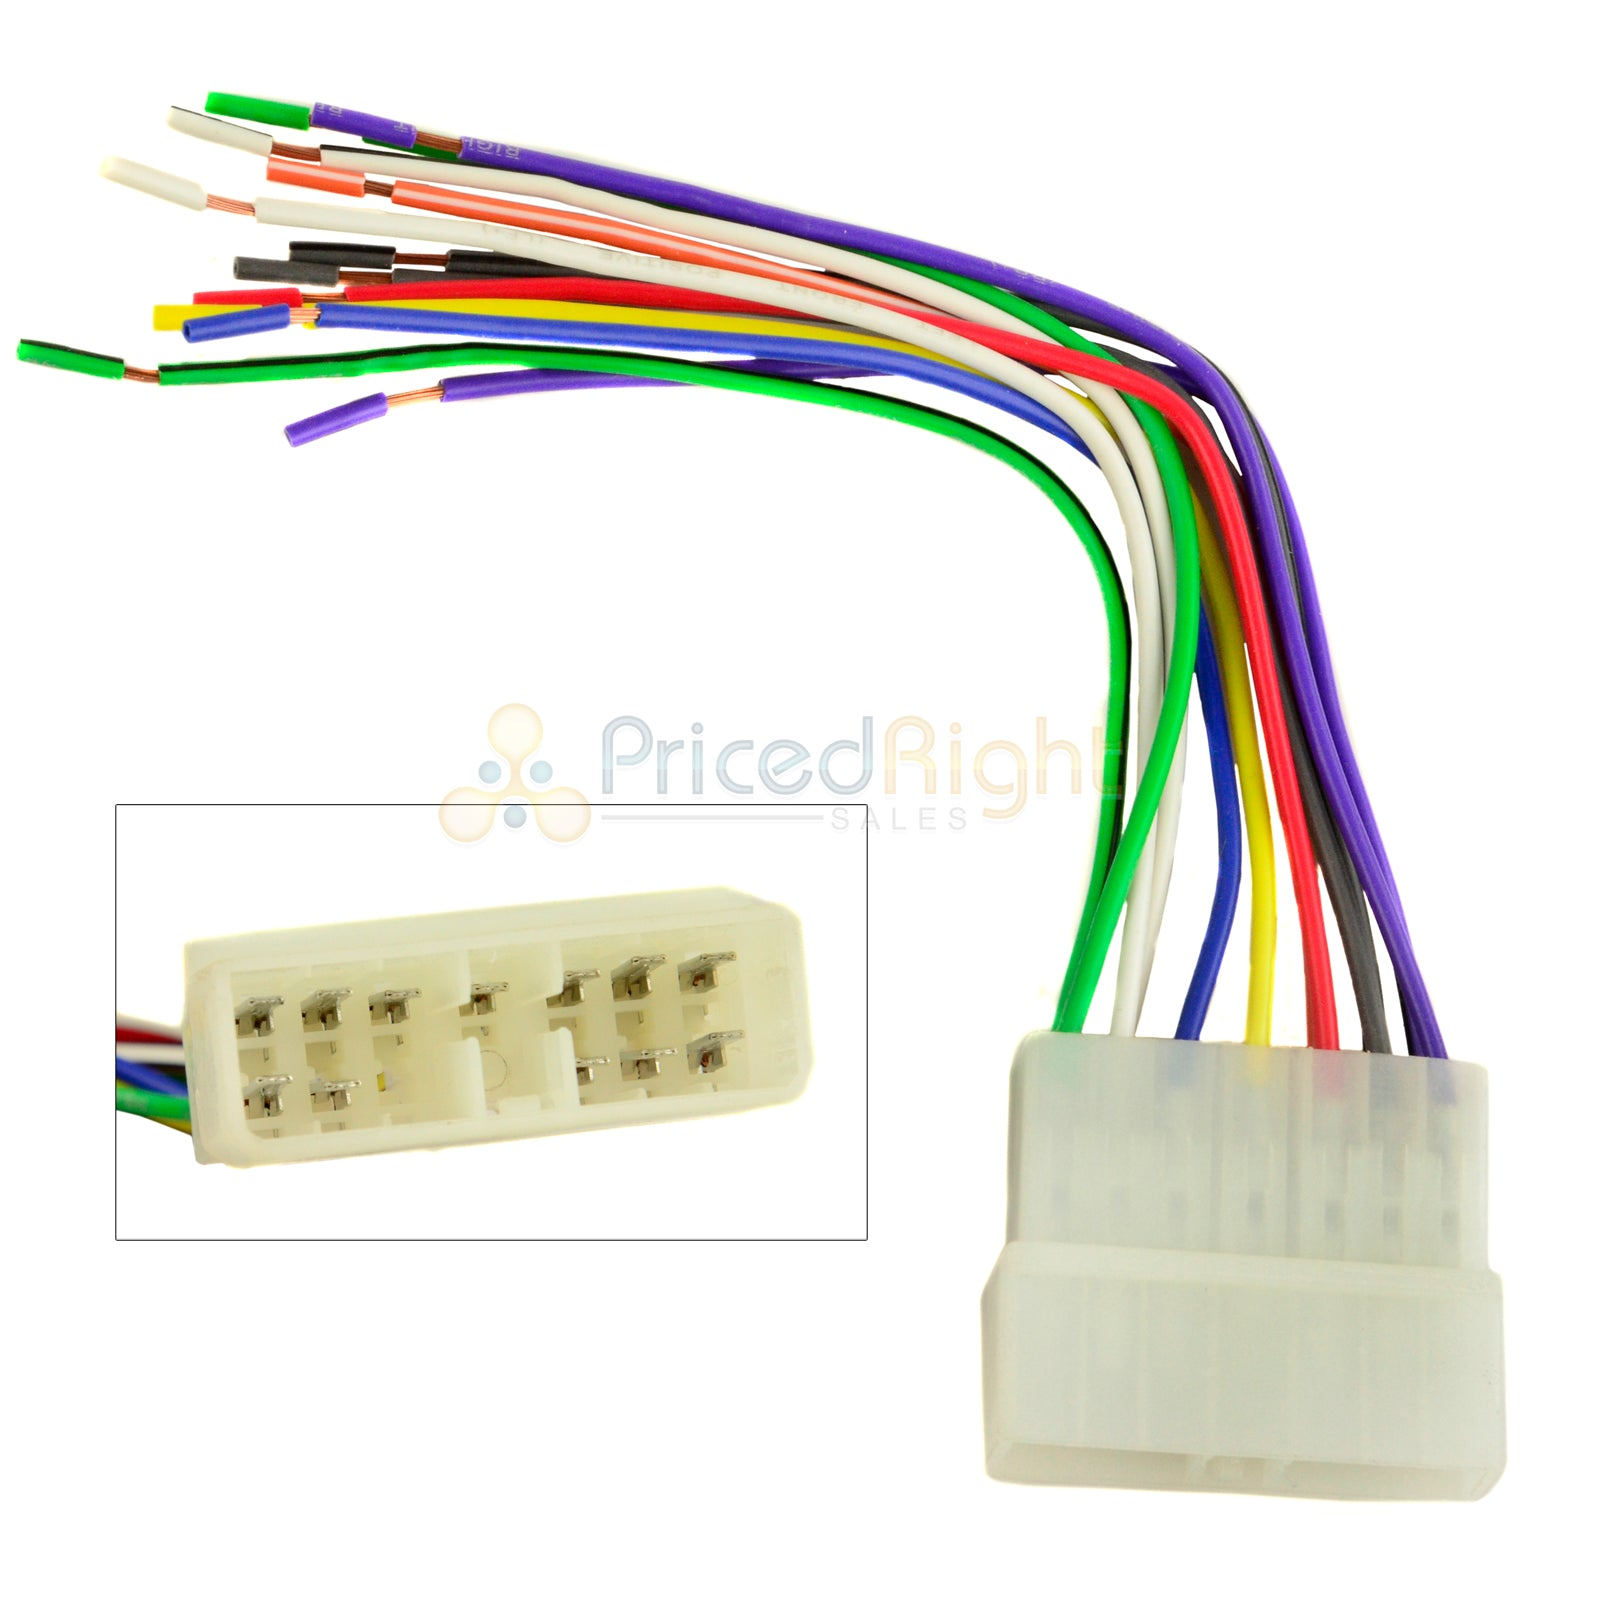 70-1002 wire harness for jeep je01b aftermarket radio installation car –  pricedrightsales  pricedrightsales